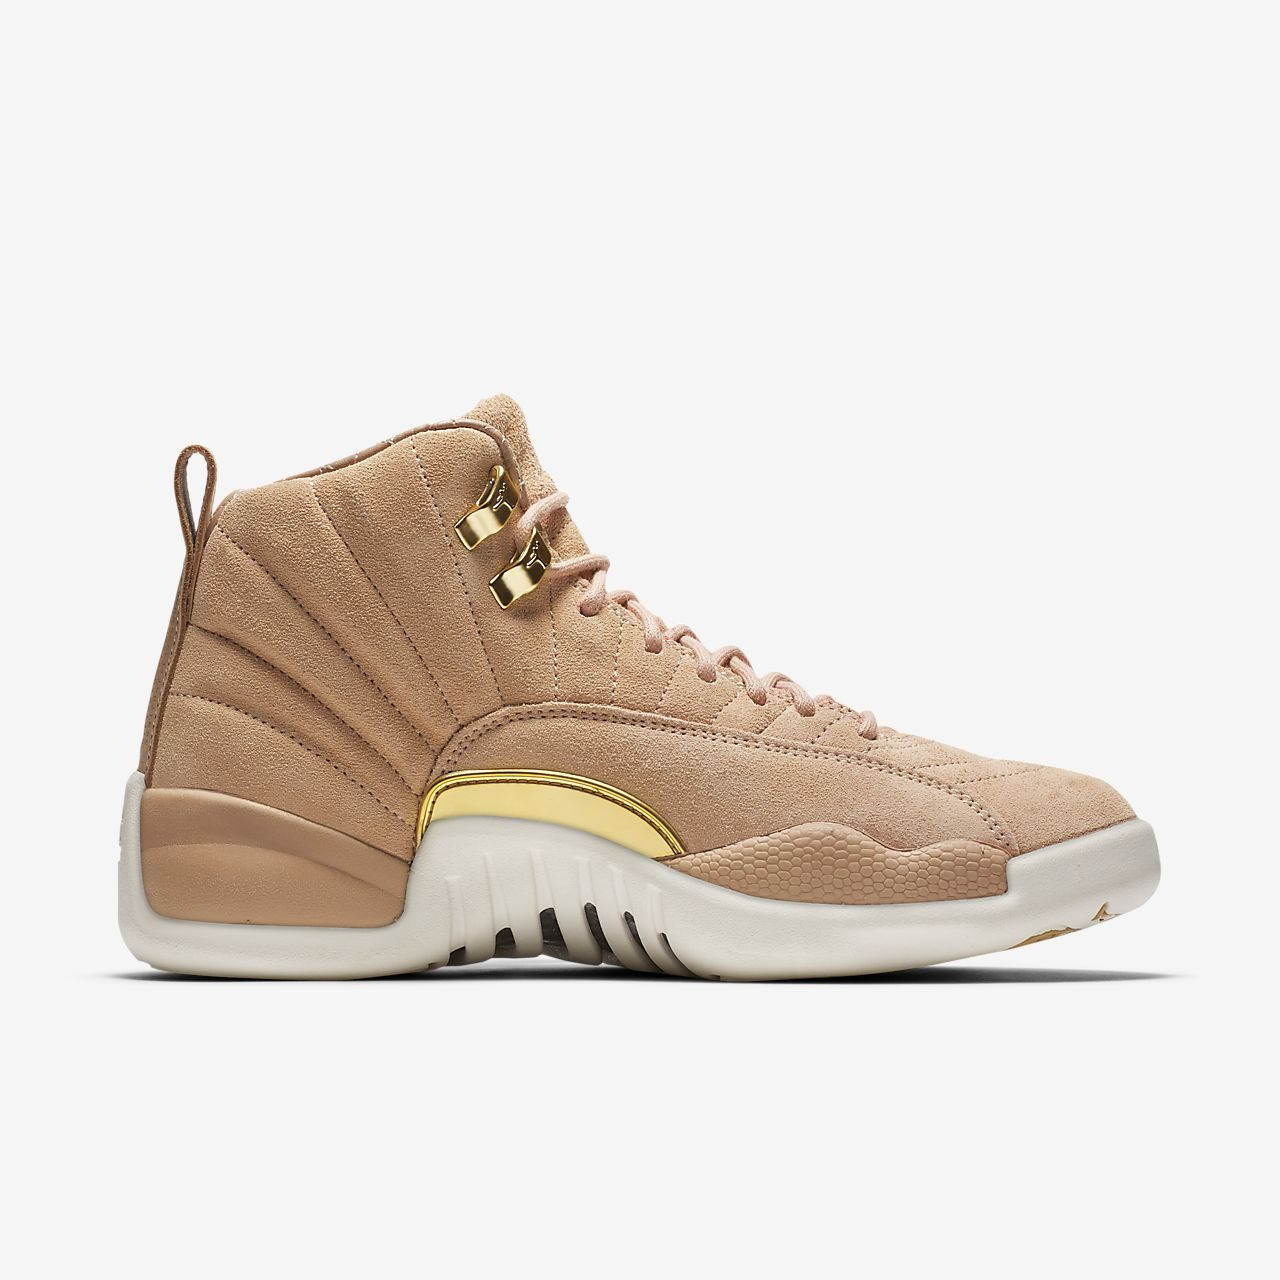 2a0ce6289 Air Jordan 12 Retro Women s Shoe. Nike.com GB